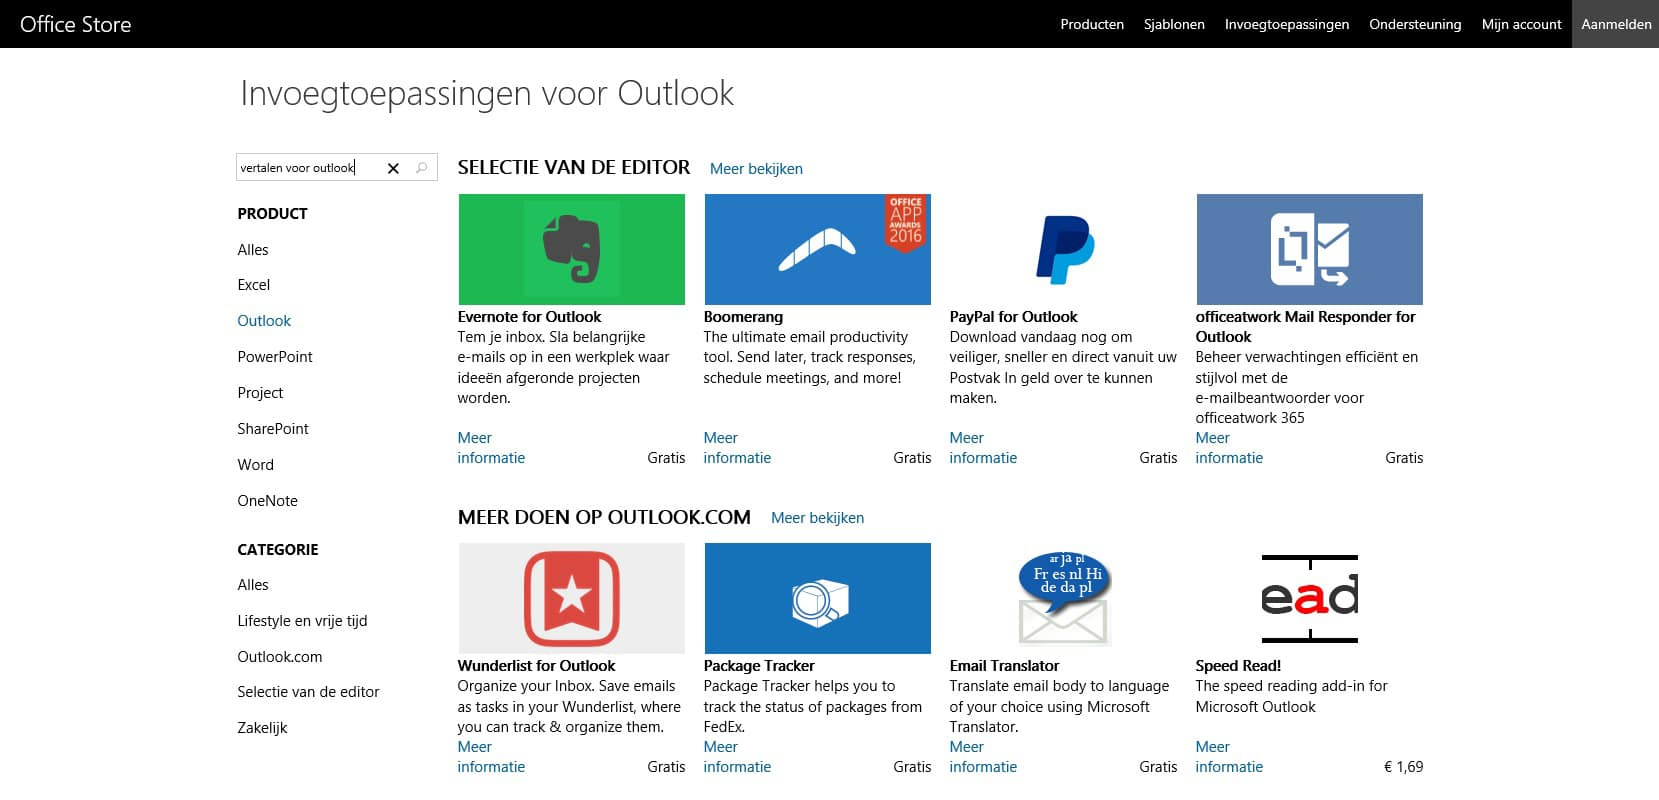 Translator for Outlook - Zoeken in Office Store